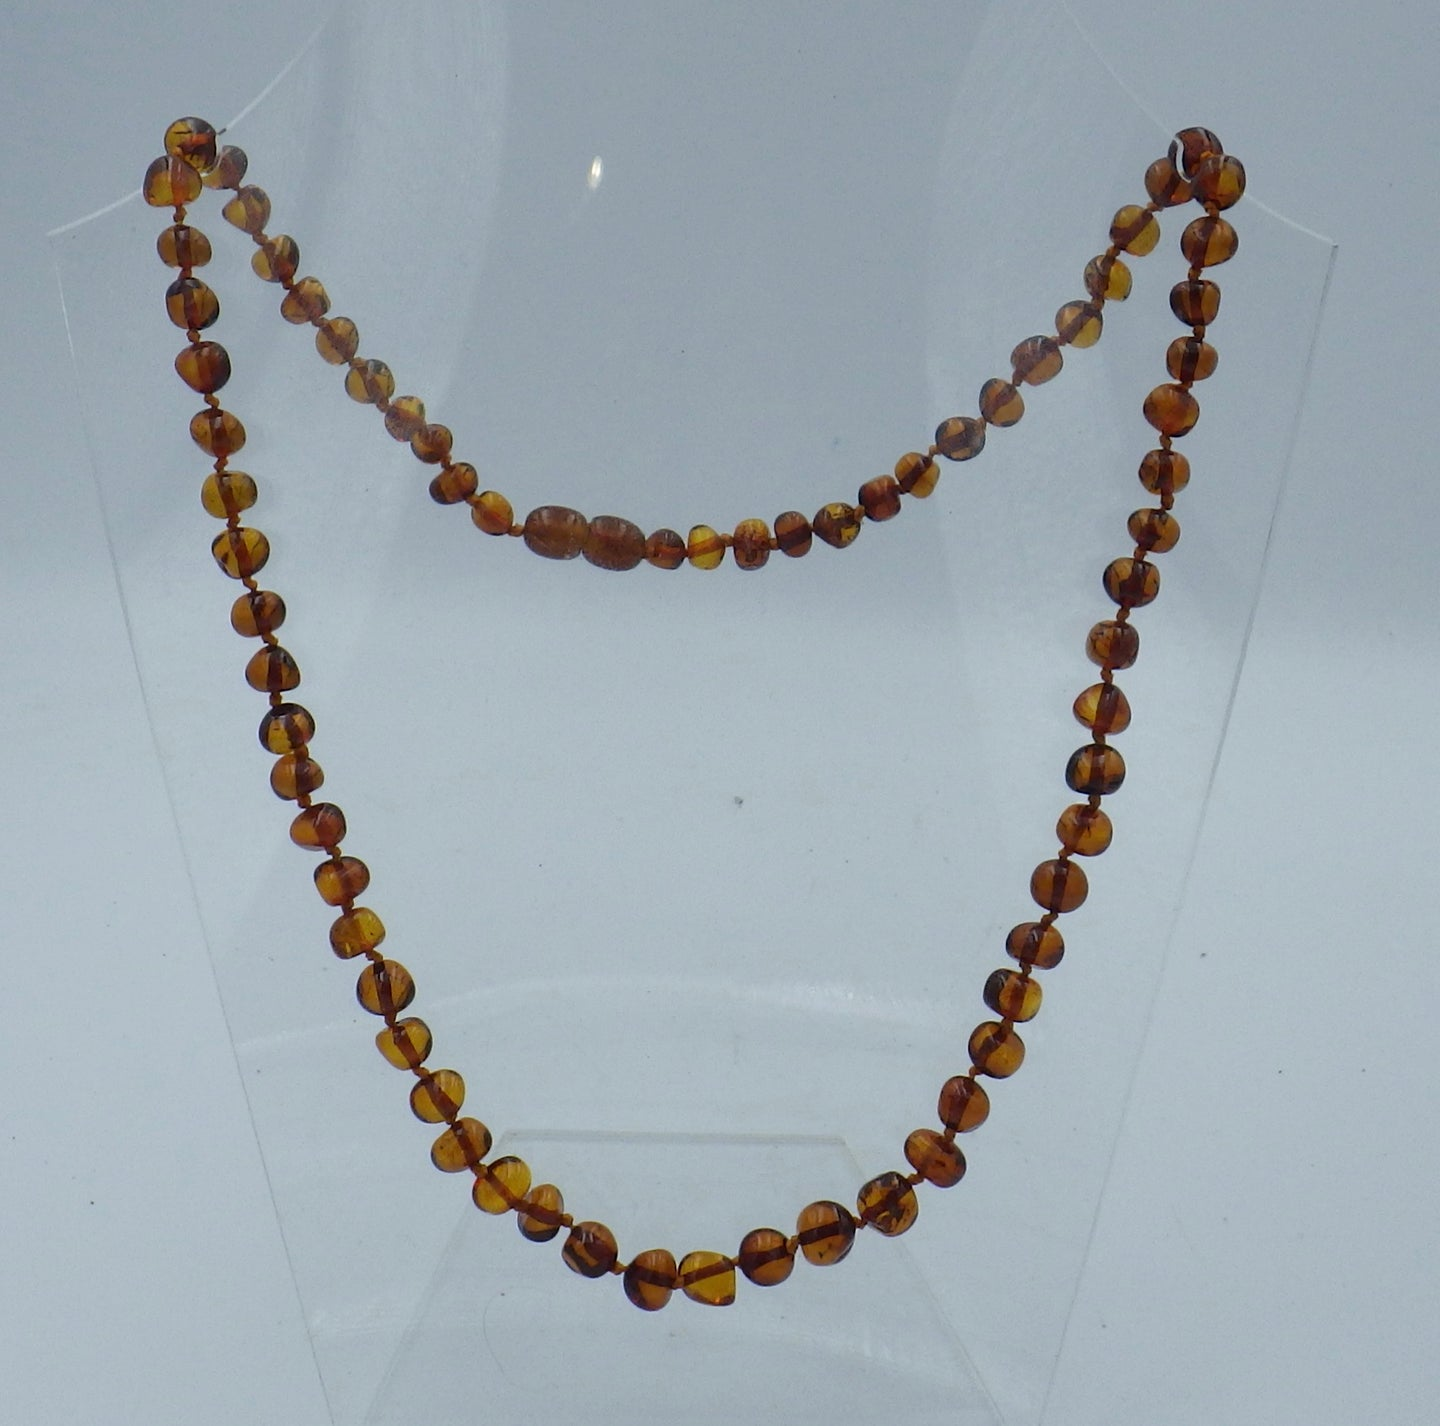 Beautiful 19 inch Cognac Baltic Amber Bead Necklace | Earthfound.co.uk